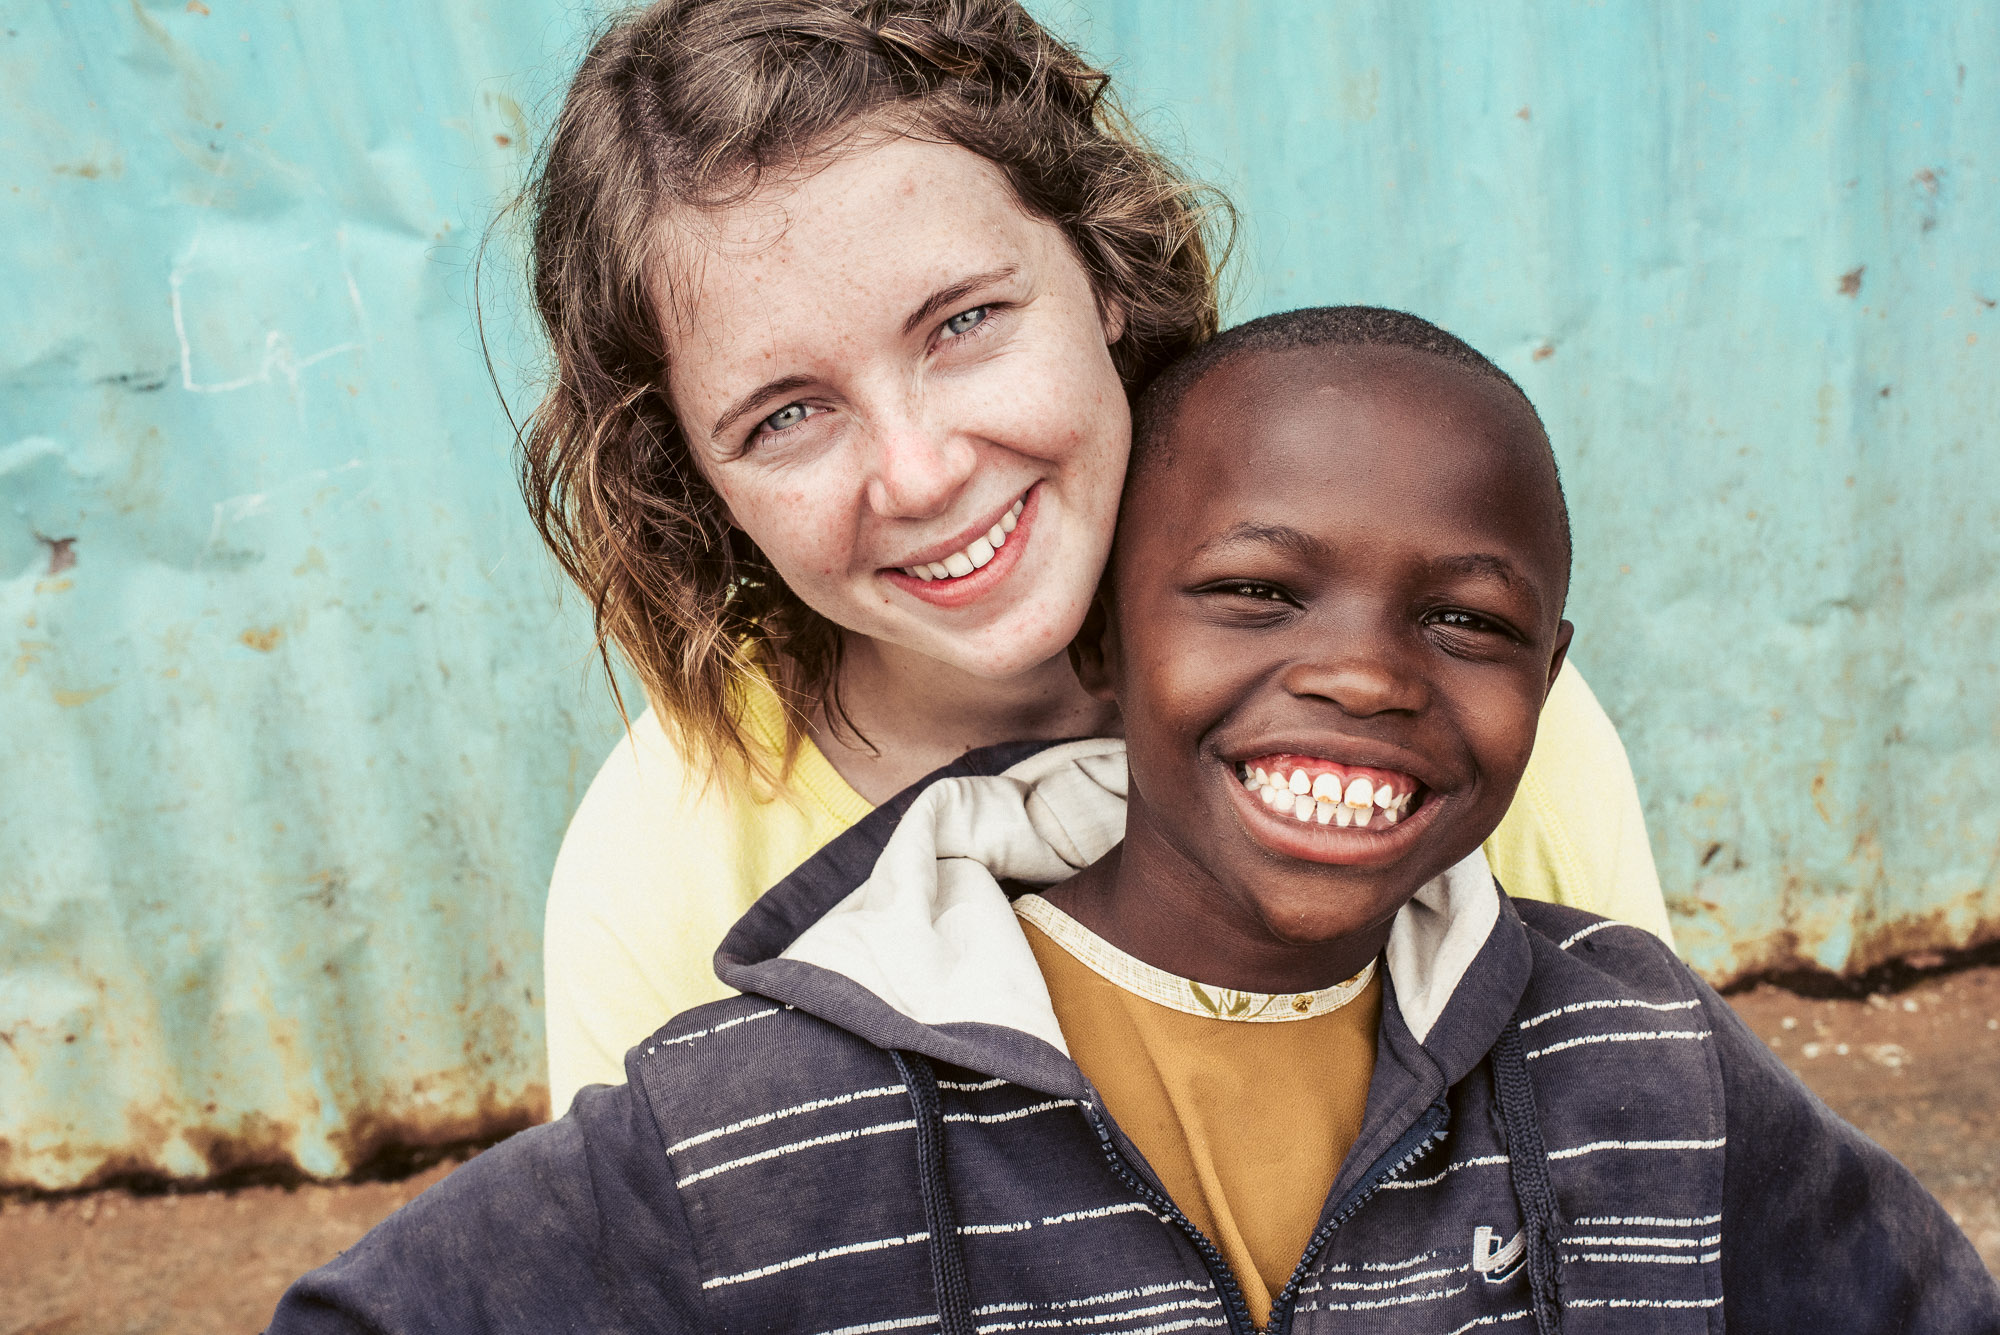 Gap Year Program - Love Volunteers - Make a REAL difference abroad!  1